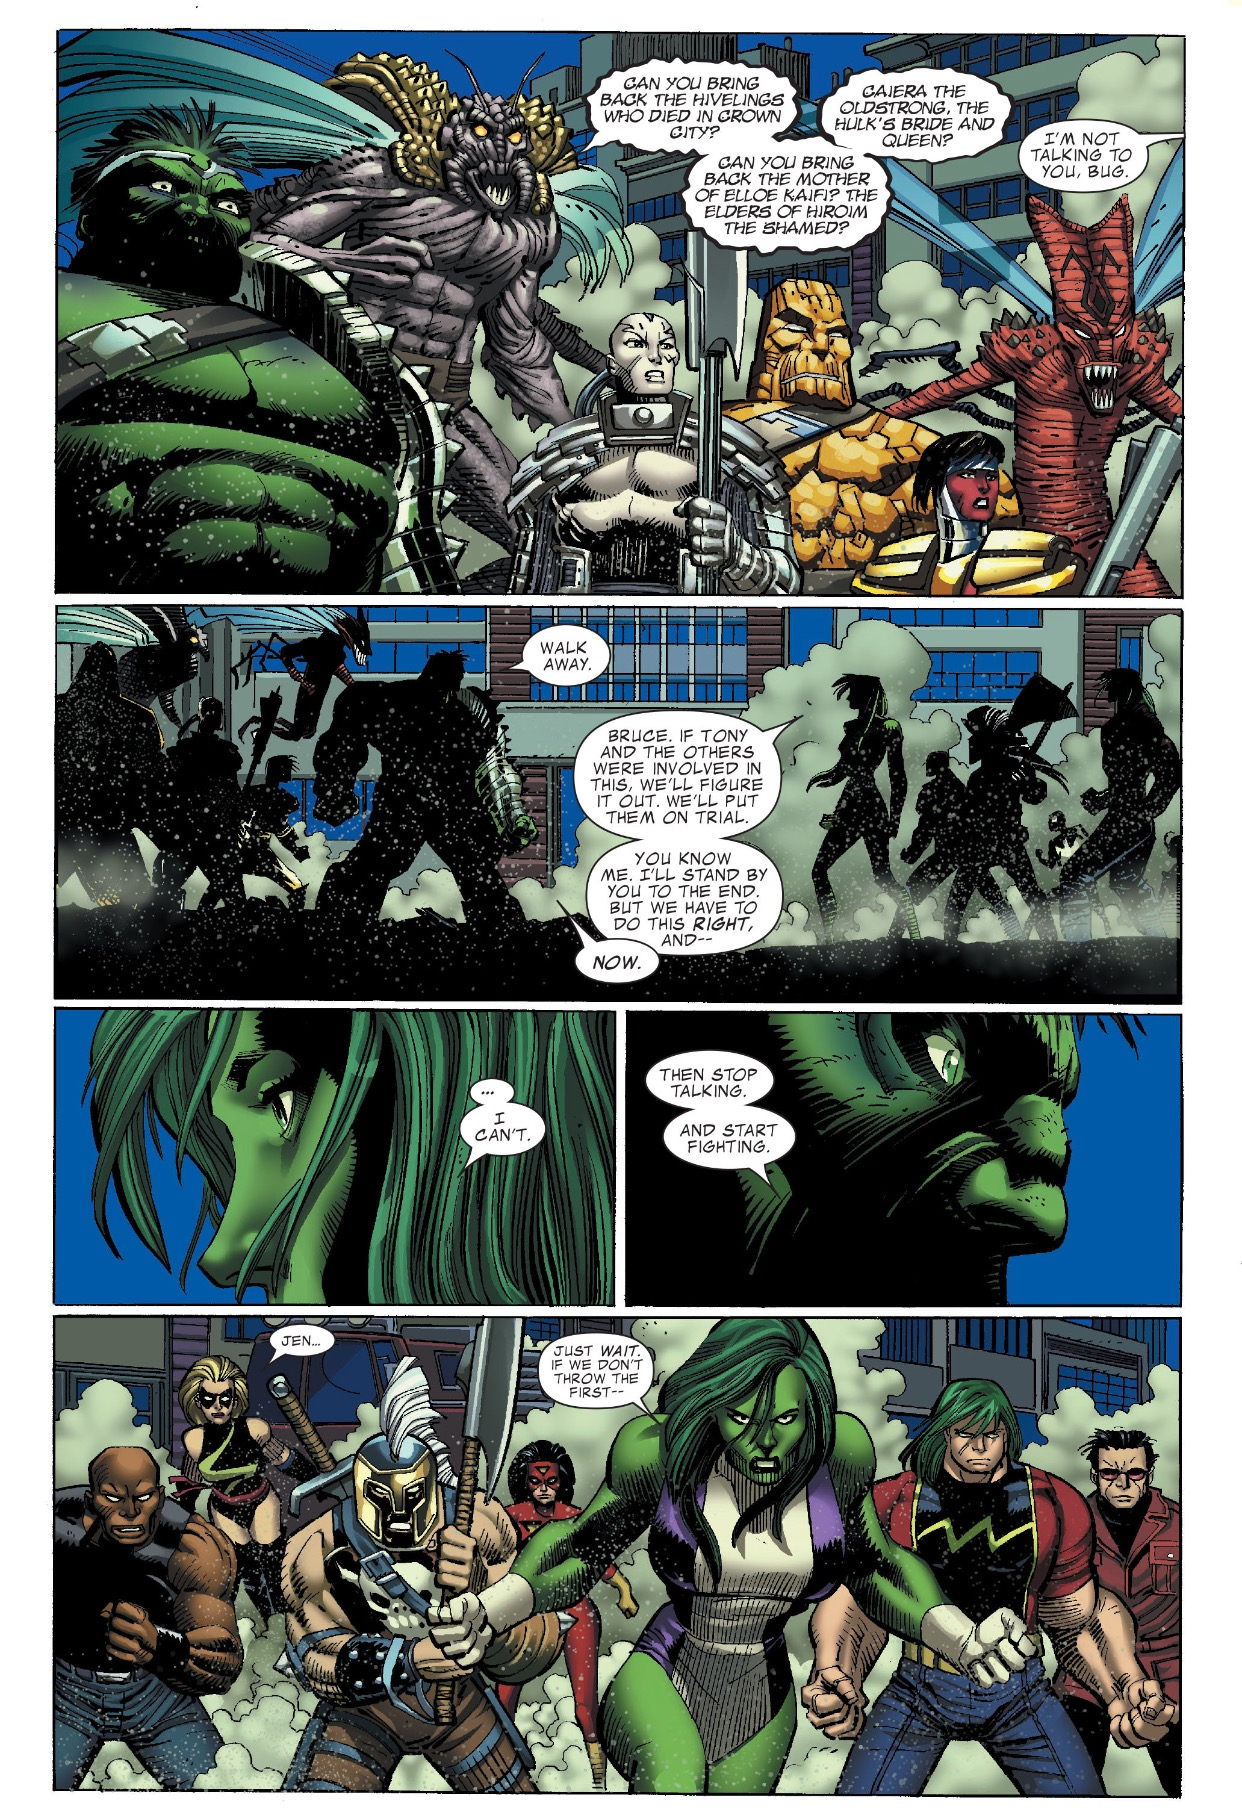 The incredible hulk vs she hulk world war hulk hulk vs she hulk publicscrutiny Images